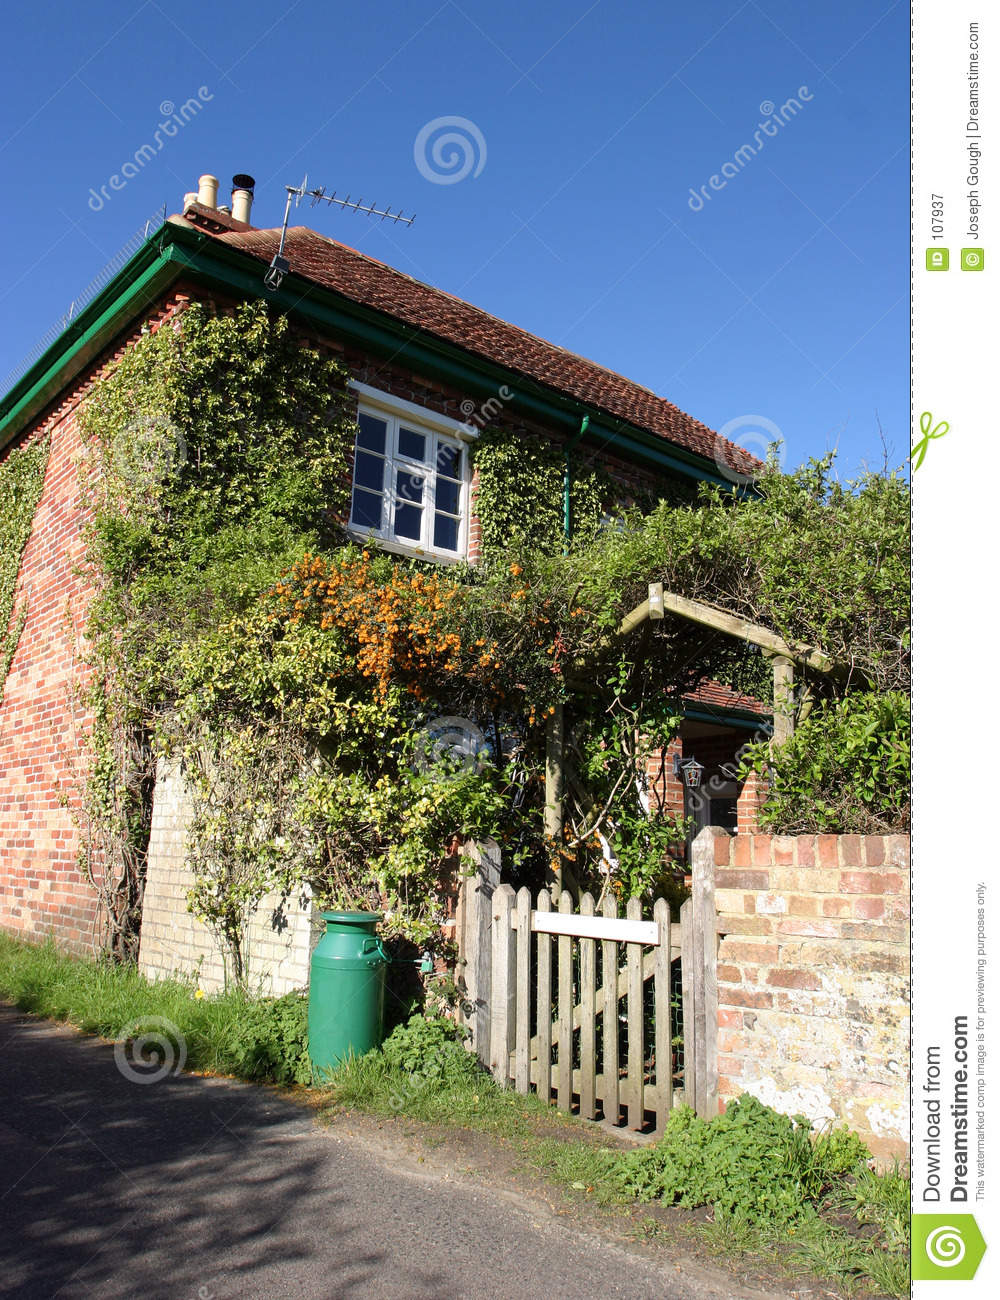 Download Country Cottage stock image. Image of home, arch, walled - 107937